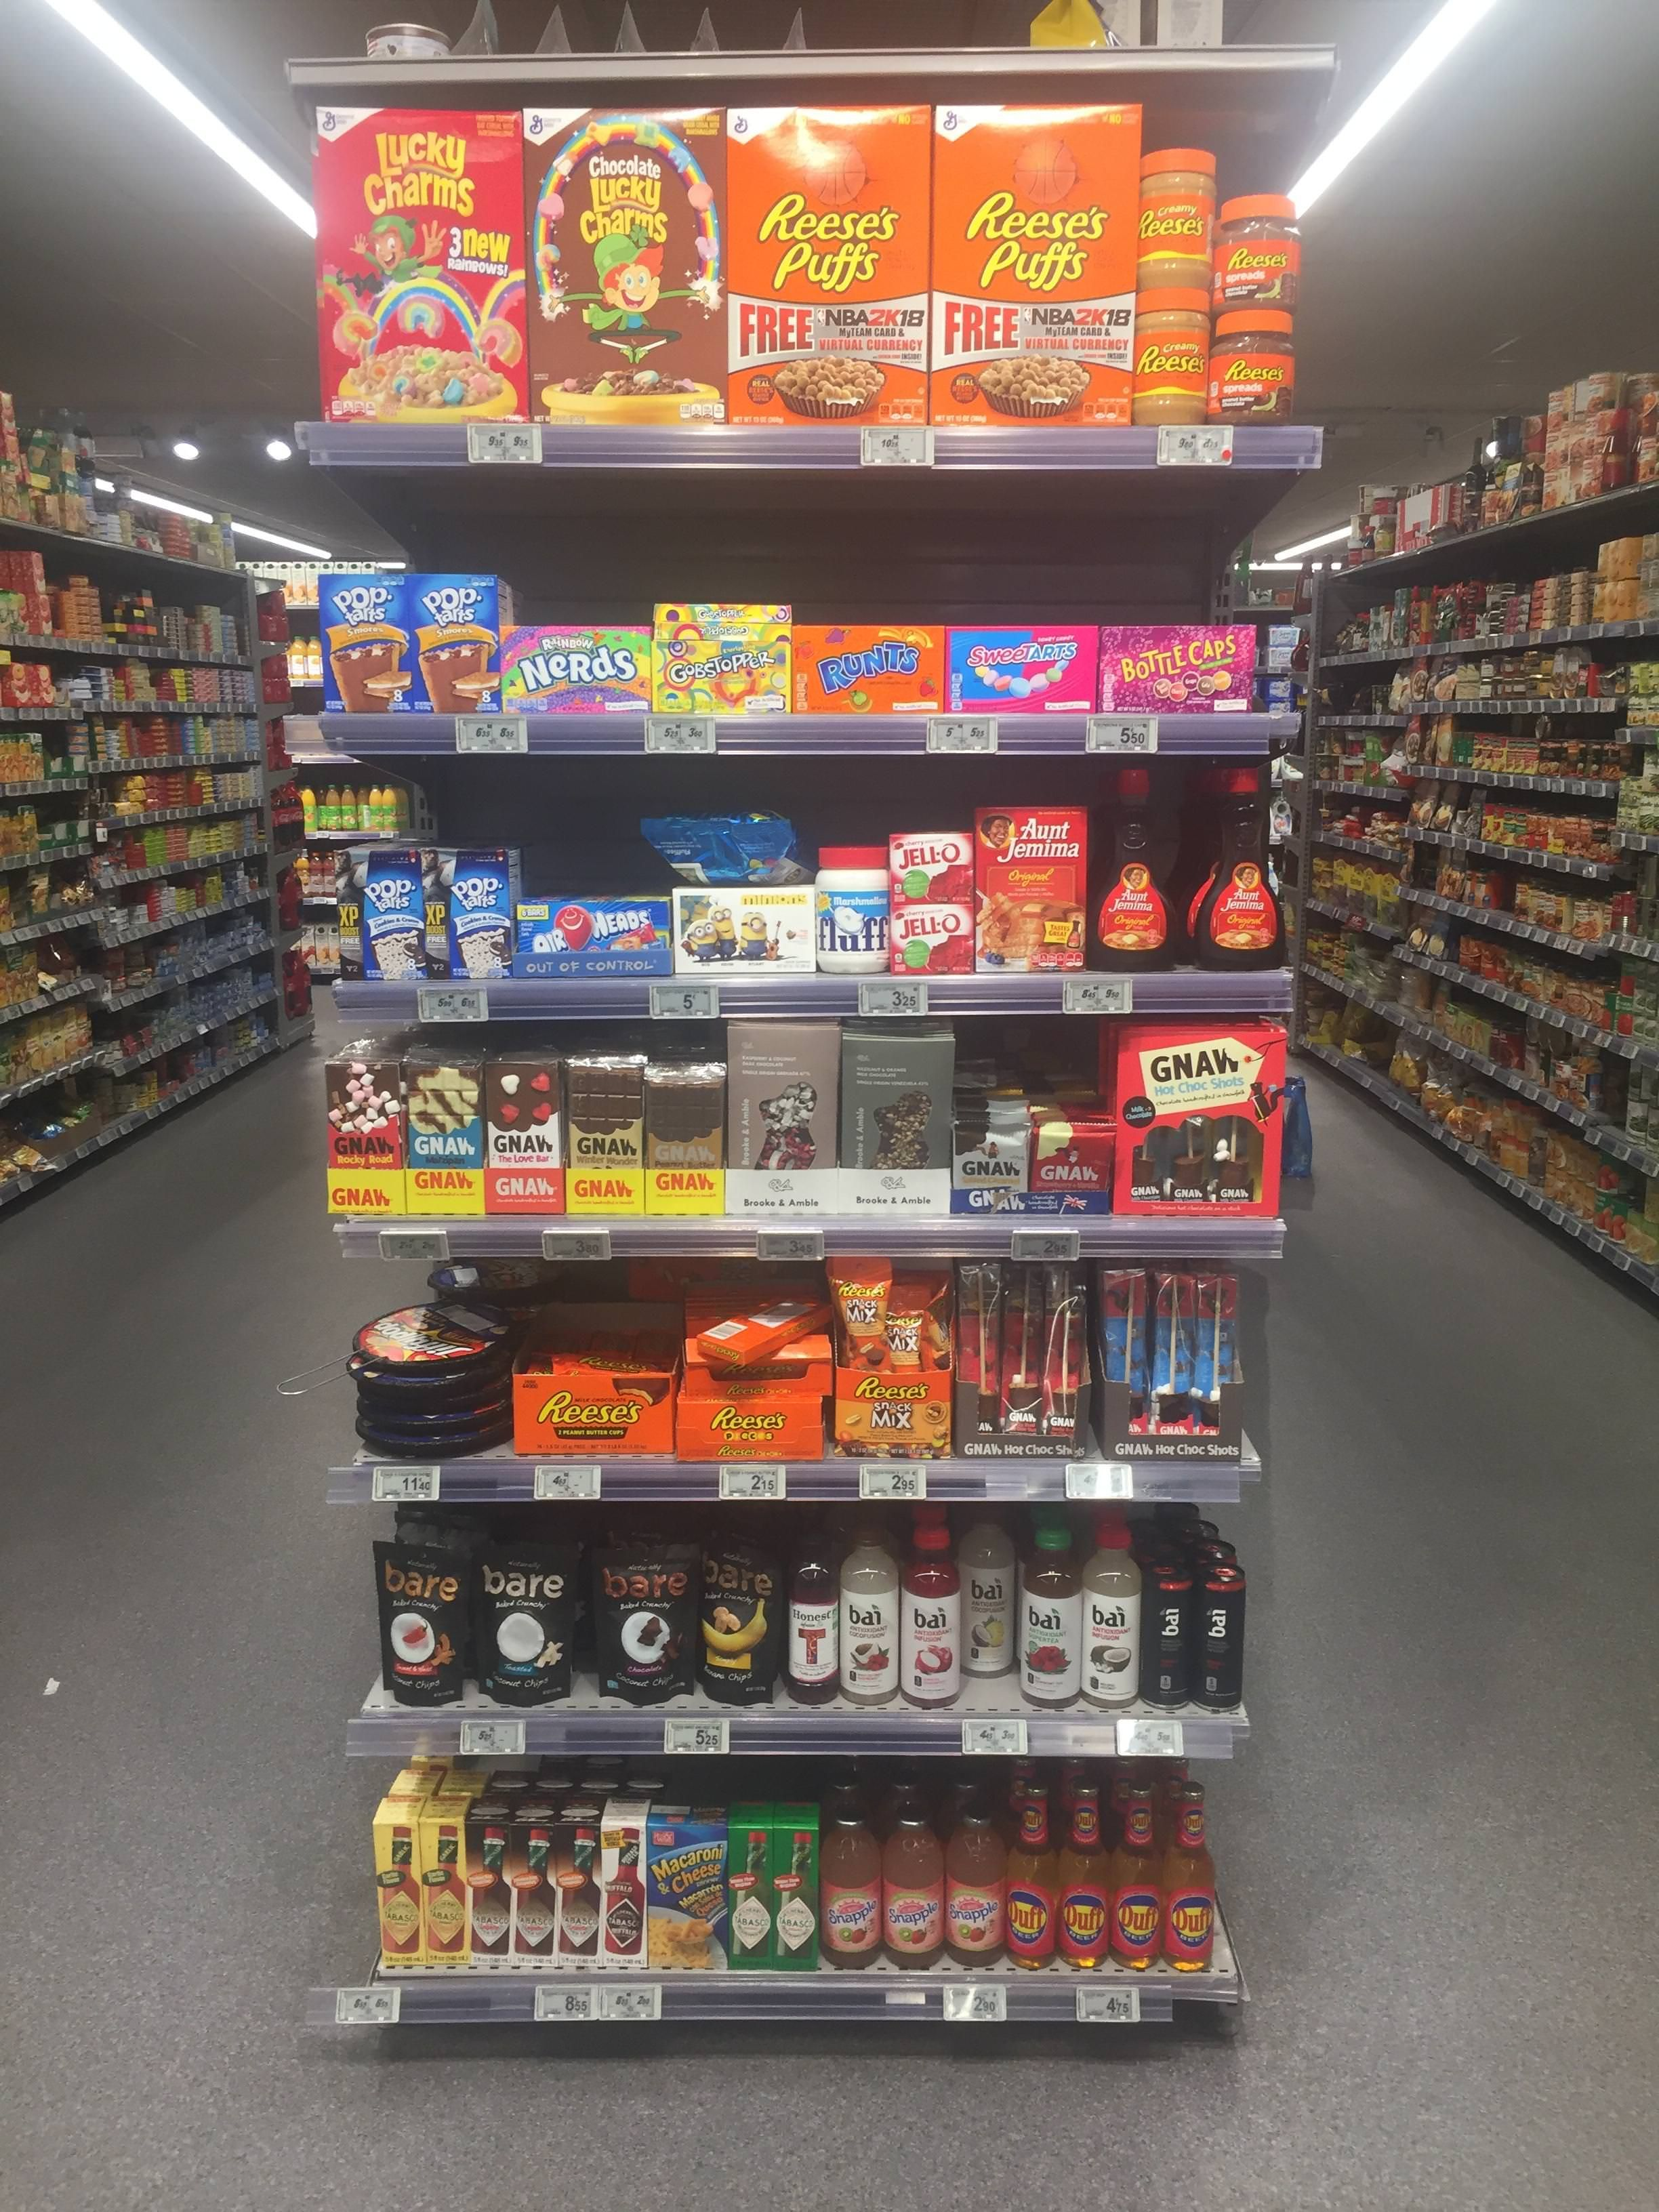 American aisle in French supermarket compared with other